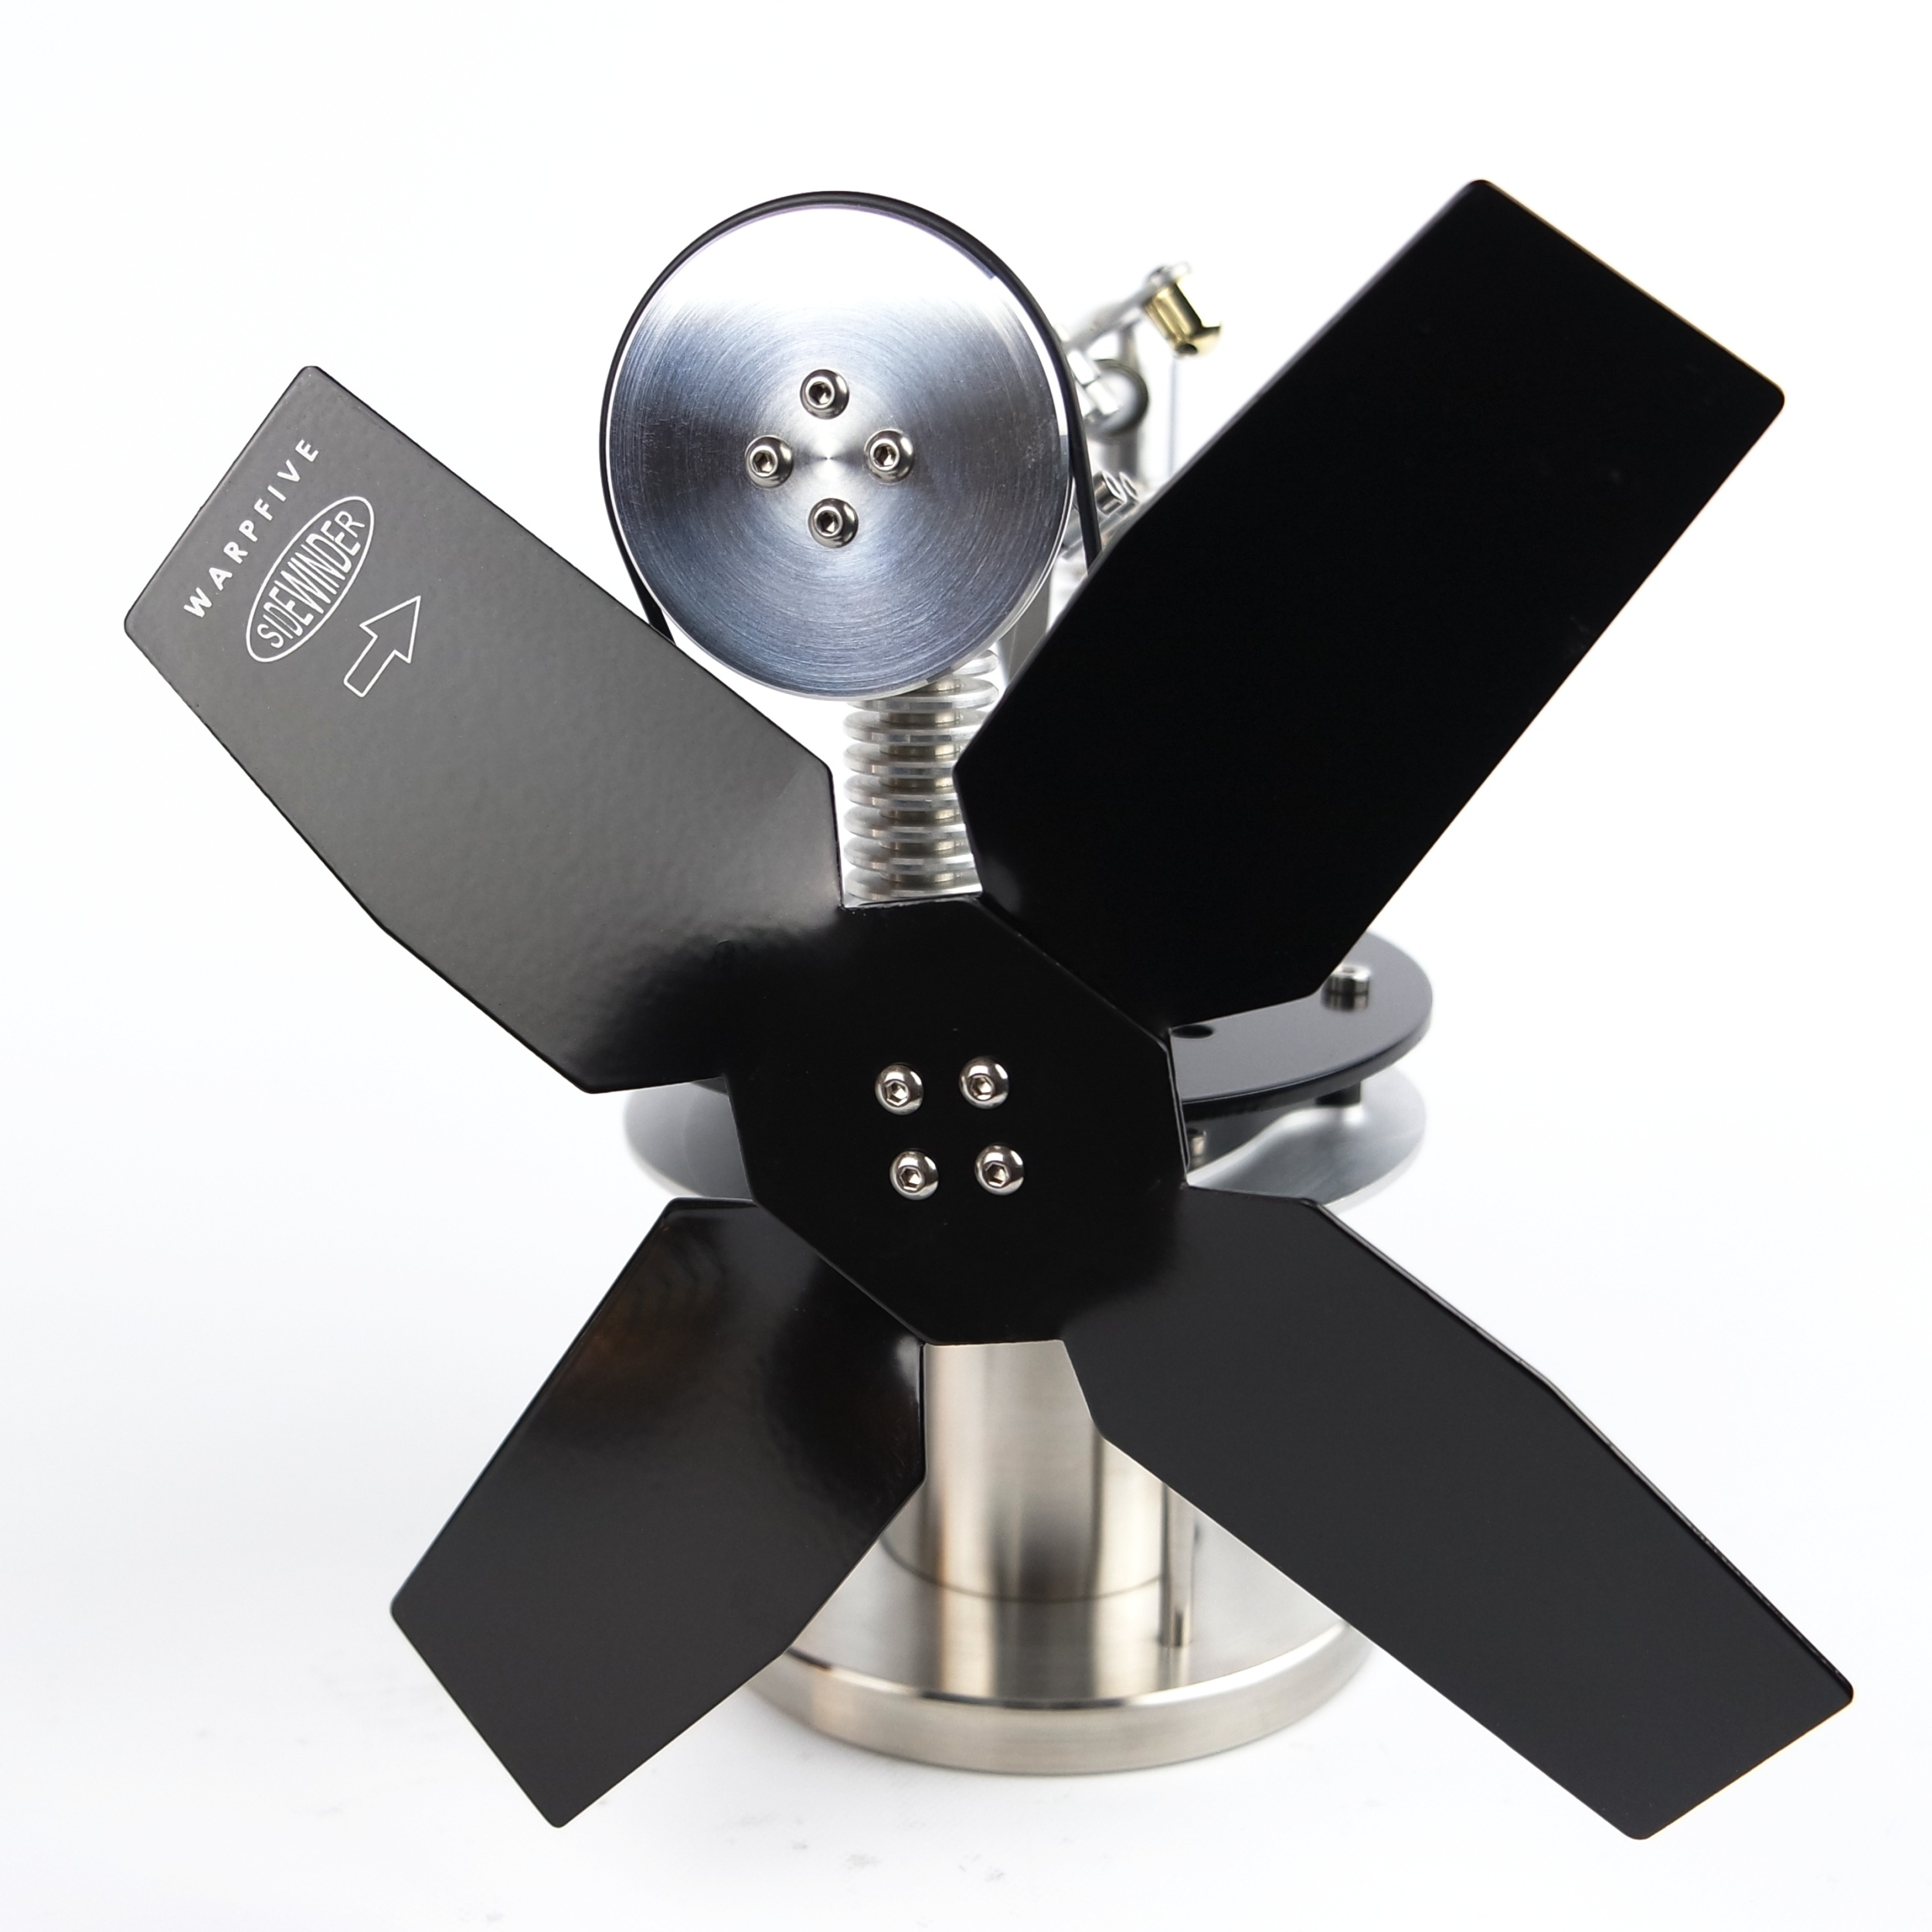 Stove Fan Small Stirling Engine Warpfive Fans